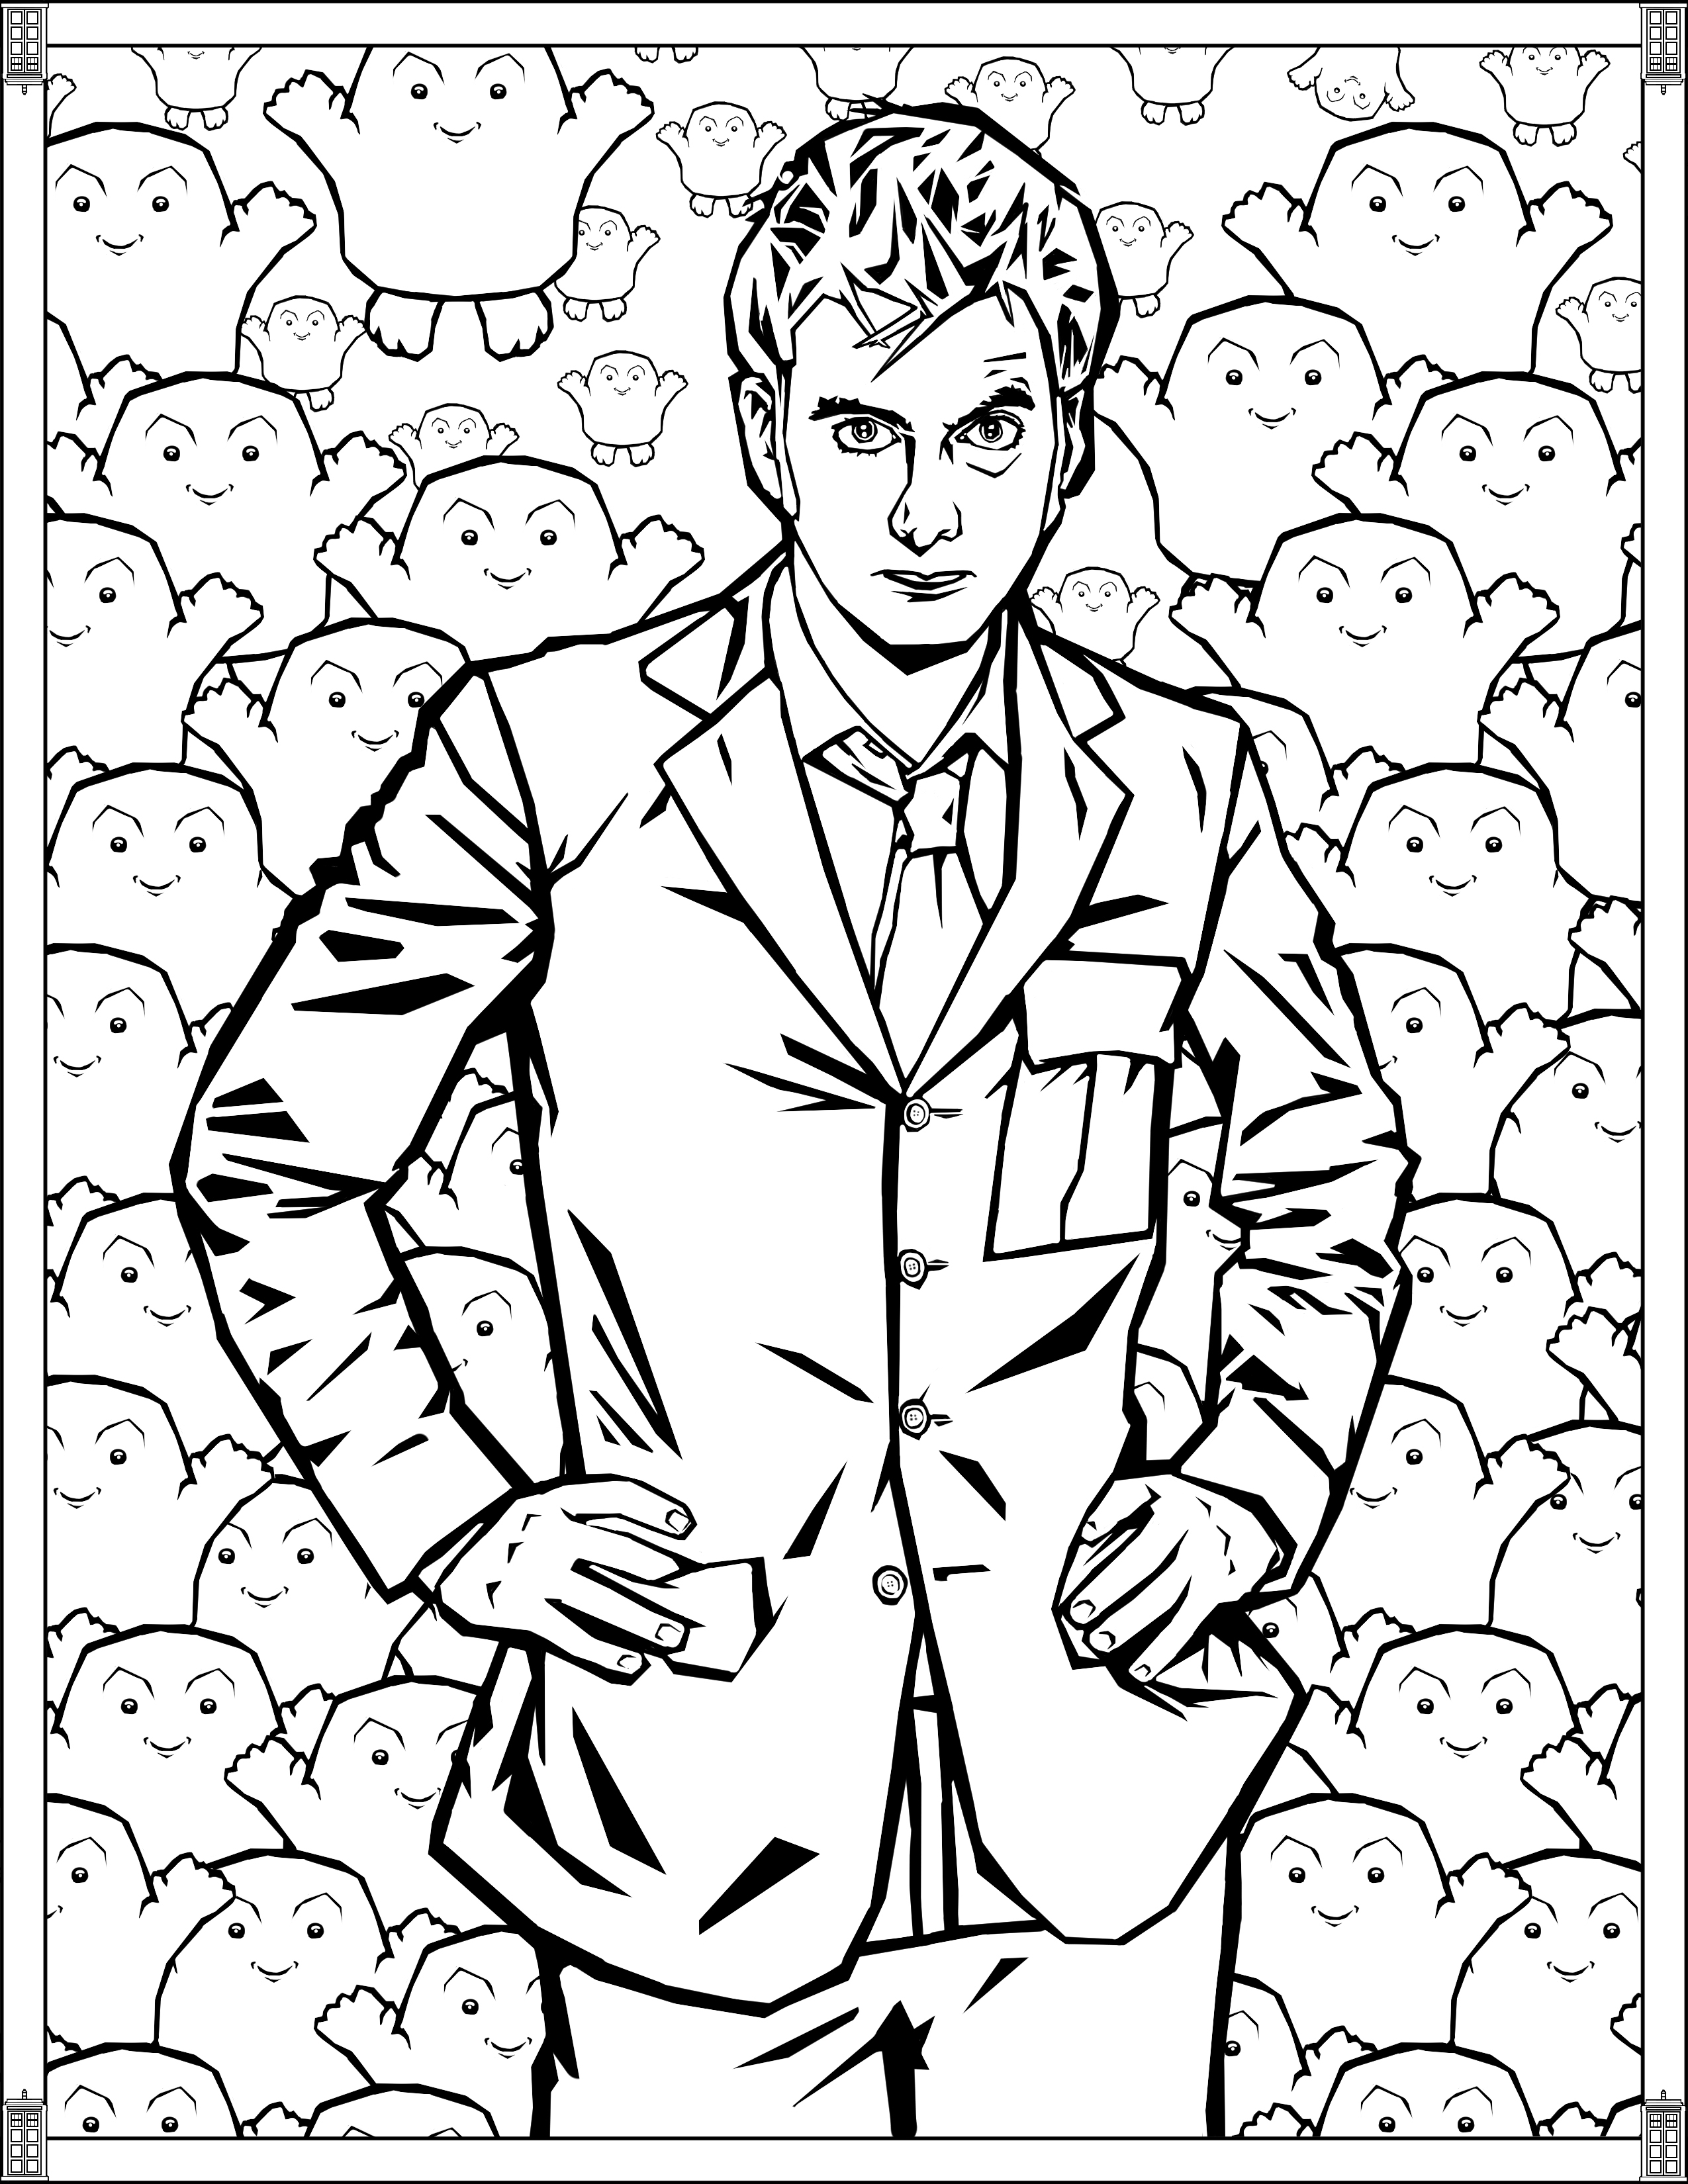 doctor who pictures to colour free doctor who coloring pages coloring home to pictures who doctor colour